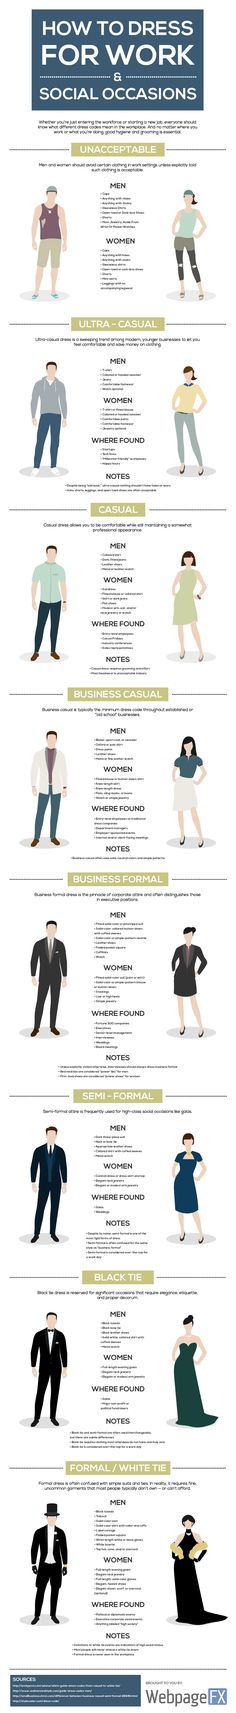 How to dress (or not) for work